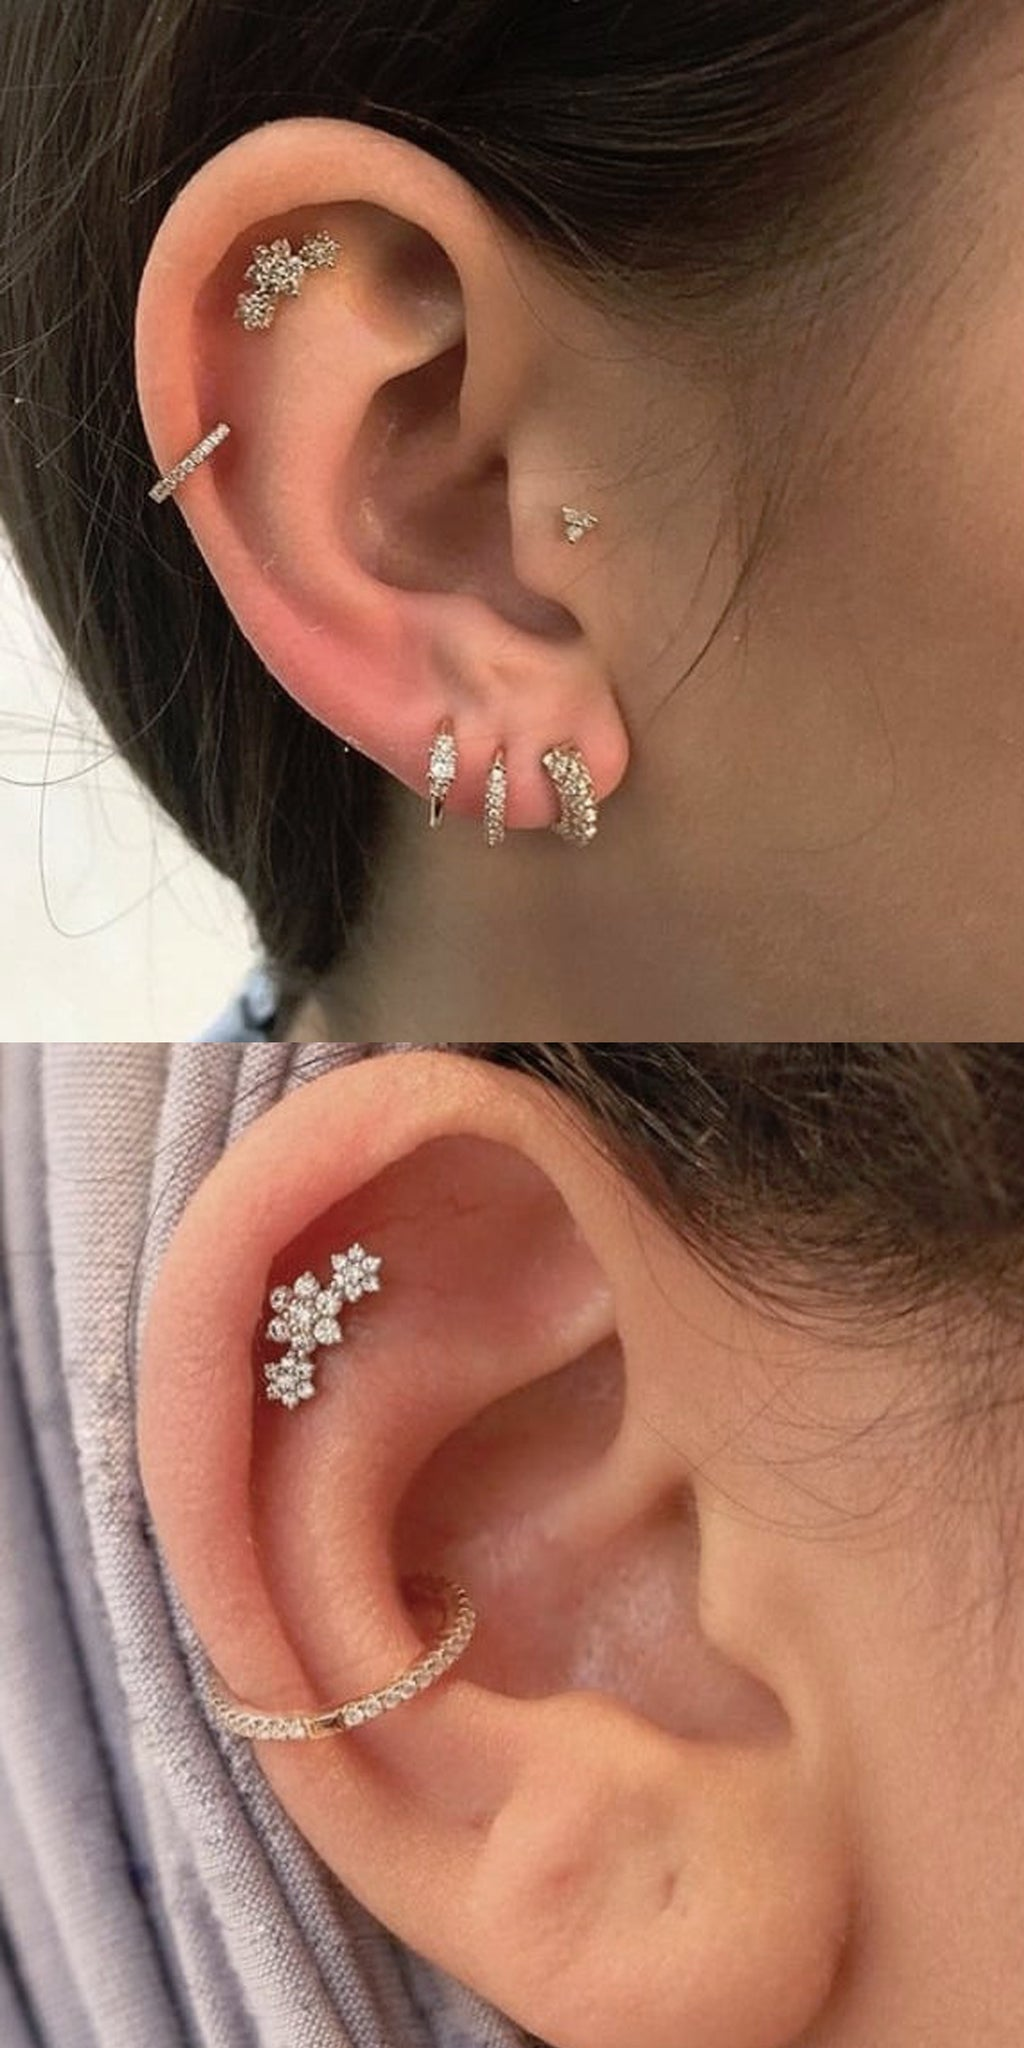 Celebrity Multiple Ear Piercing Ideas at MyBodiArt.com - Triple Flower Cartilage Earring Stud - Single Cartilage Ring - Conch Jewelry